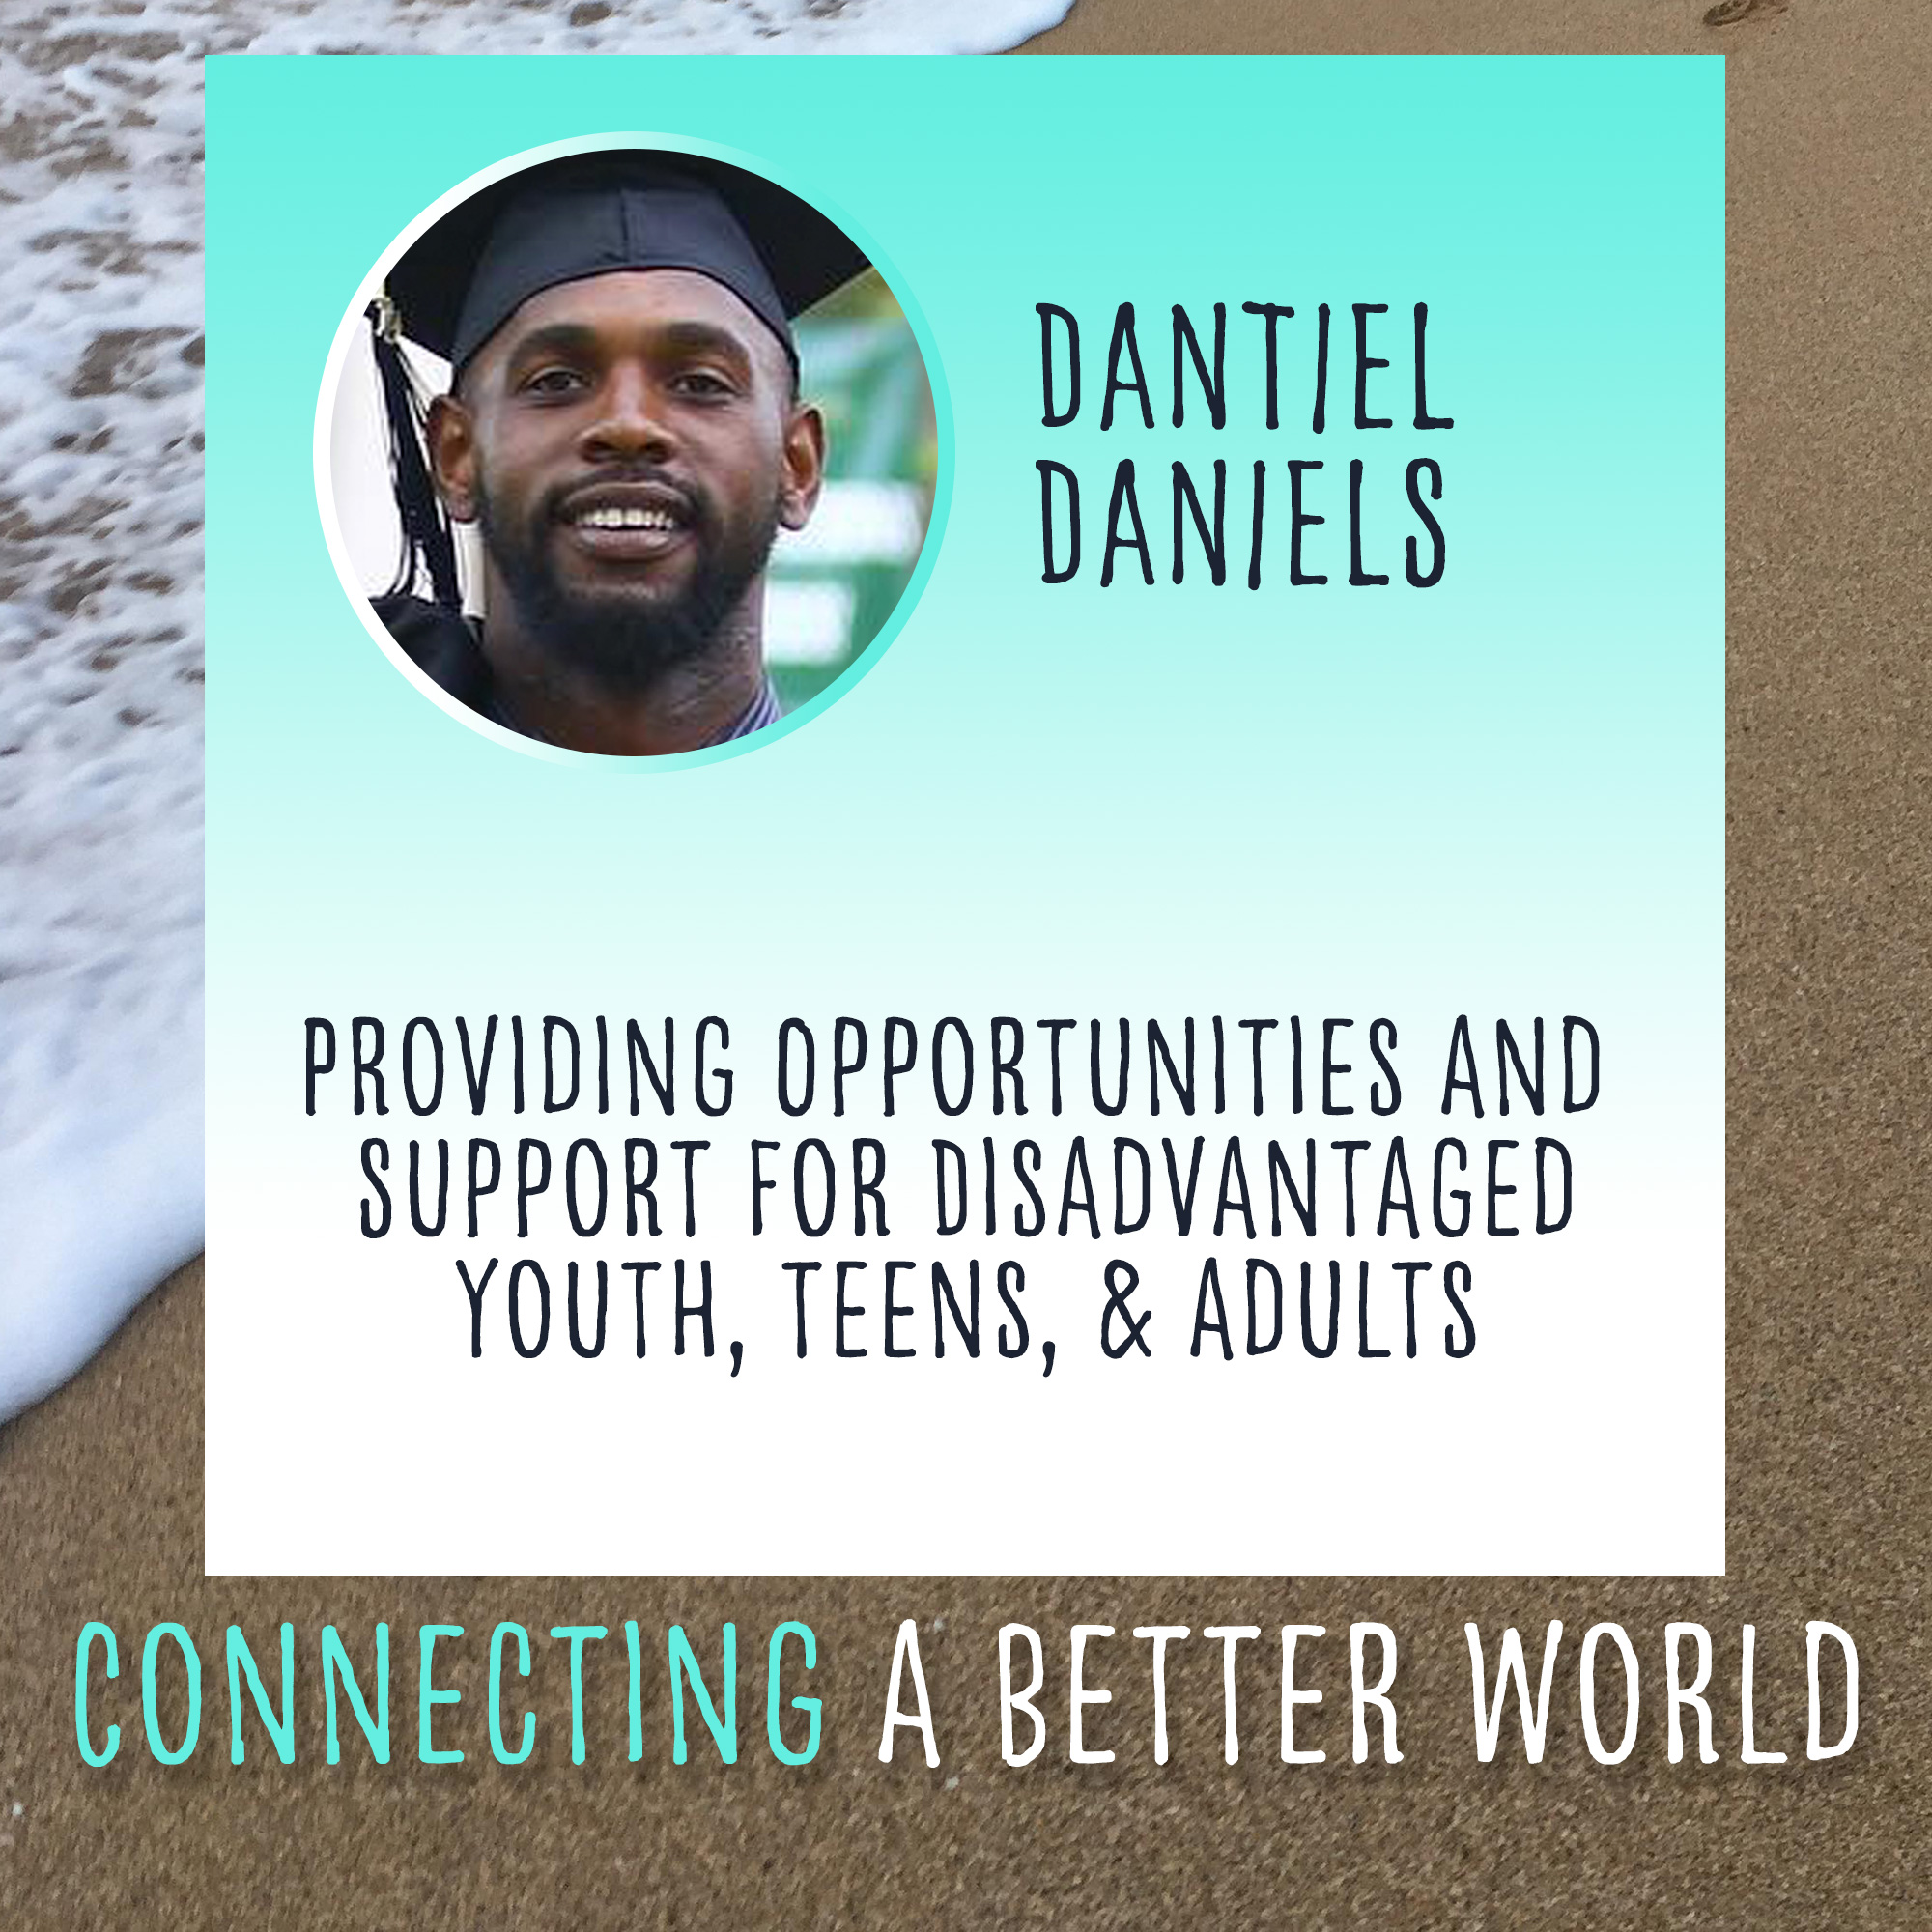 Providing Opportunities and Support for Disadvantaged Youth, Teens, and Adults with Dantiel Daniels